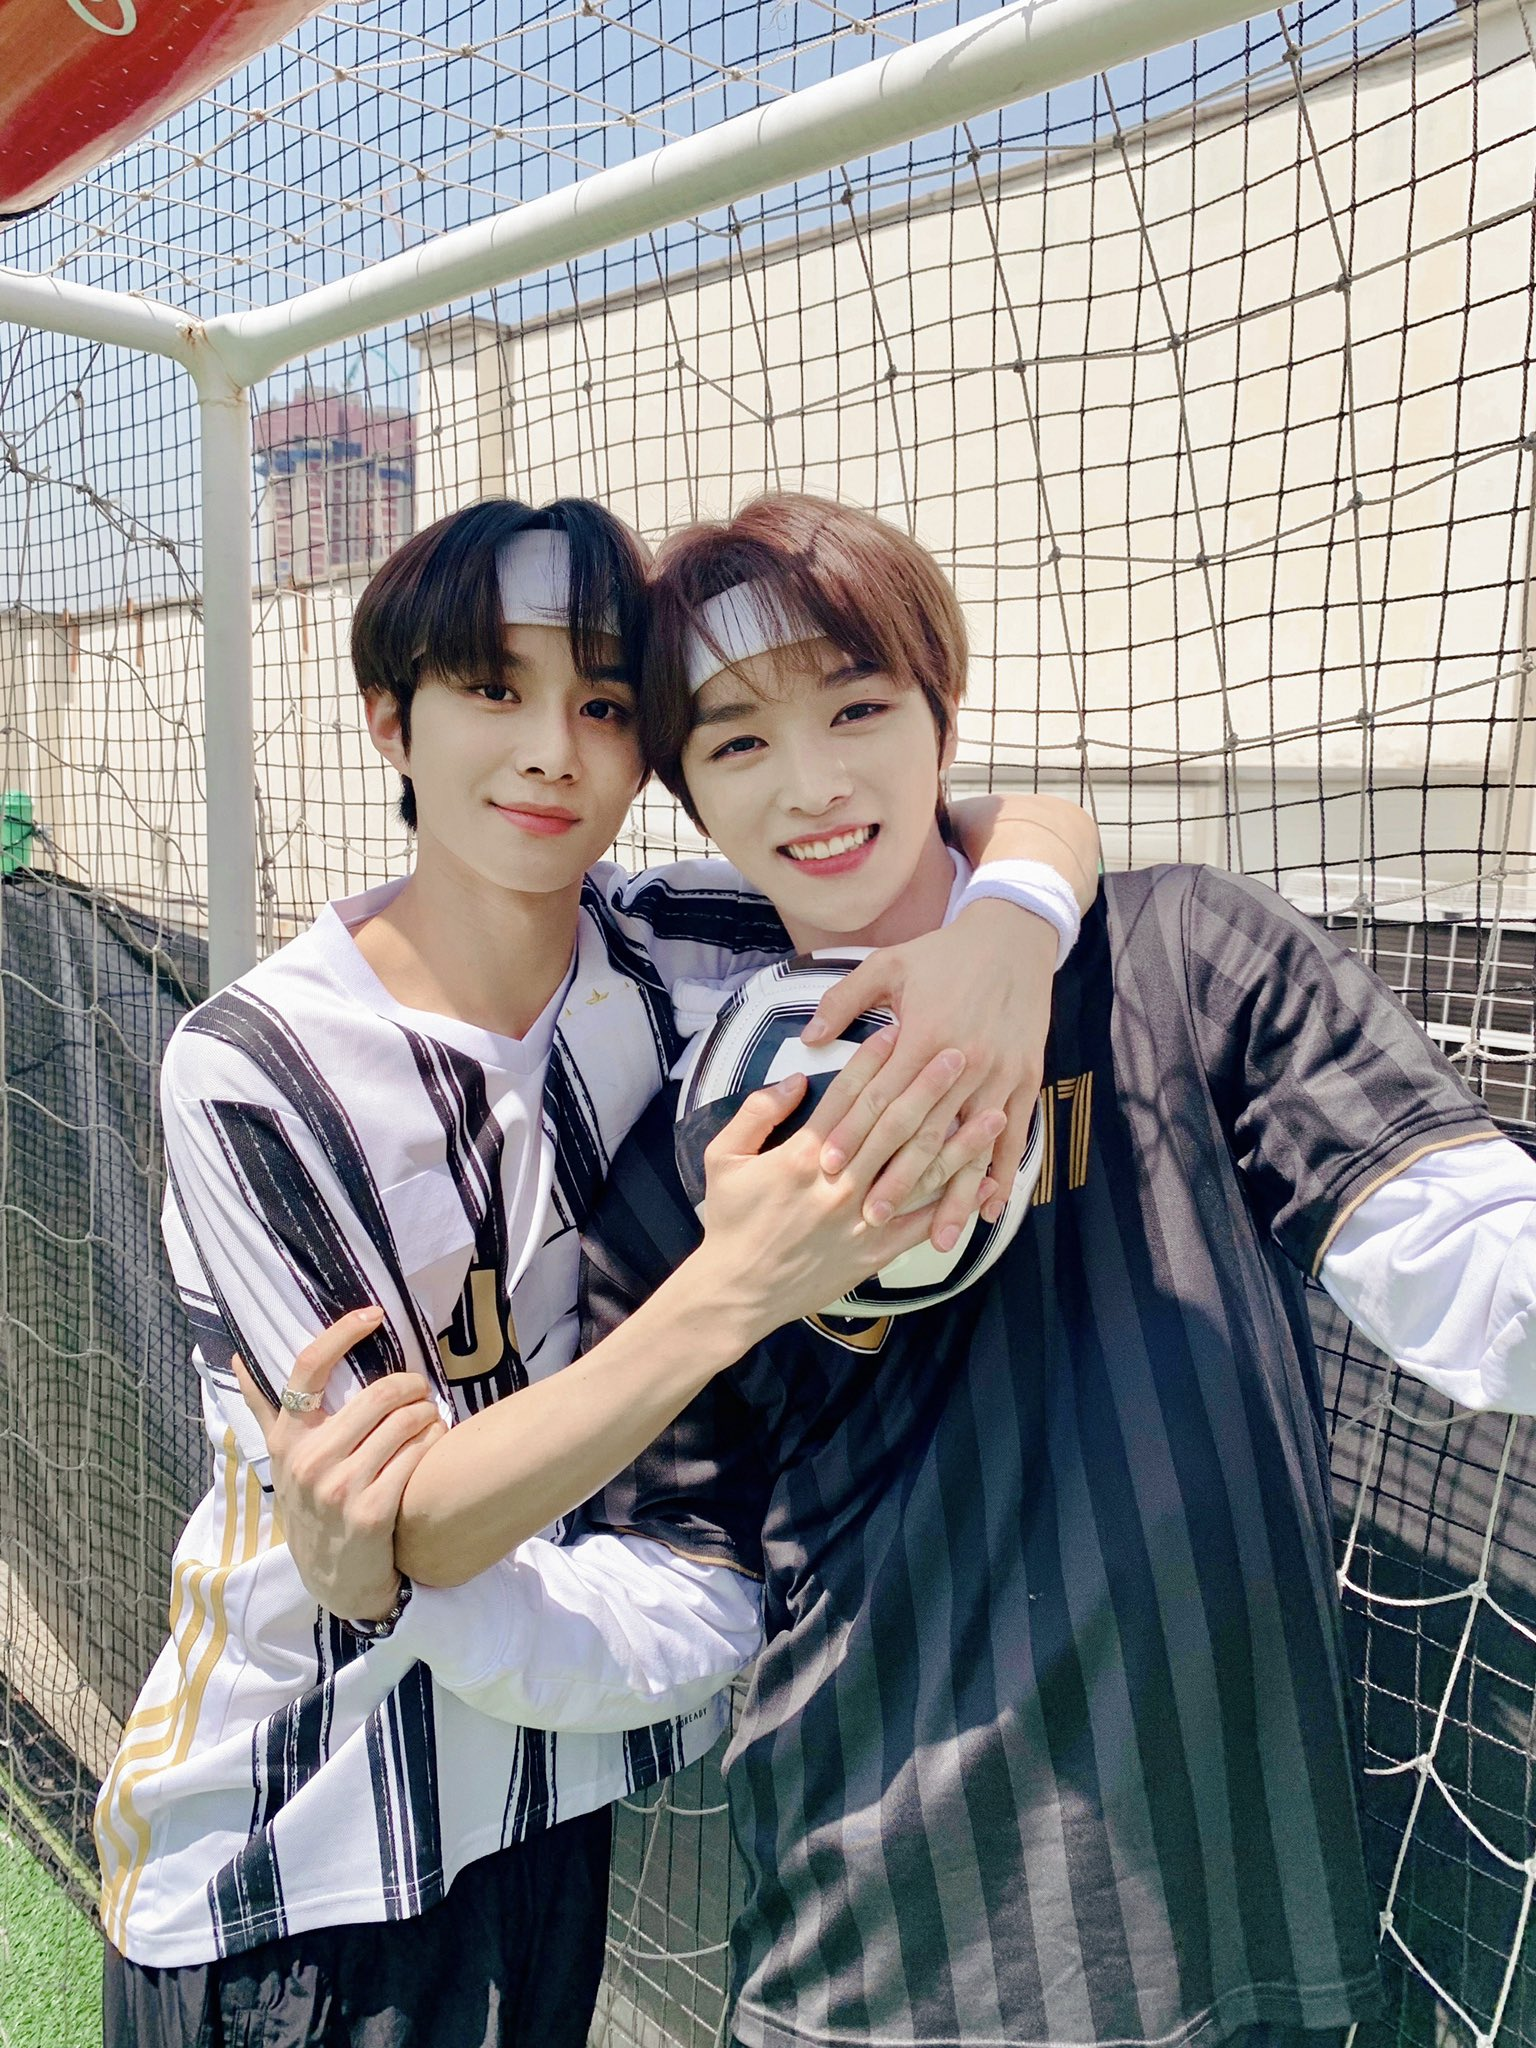 nct jungwoo sungchan @NCTsmtown